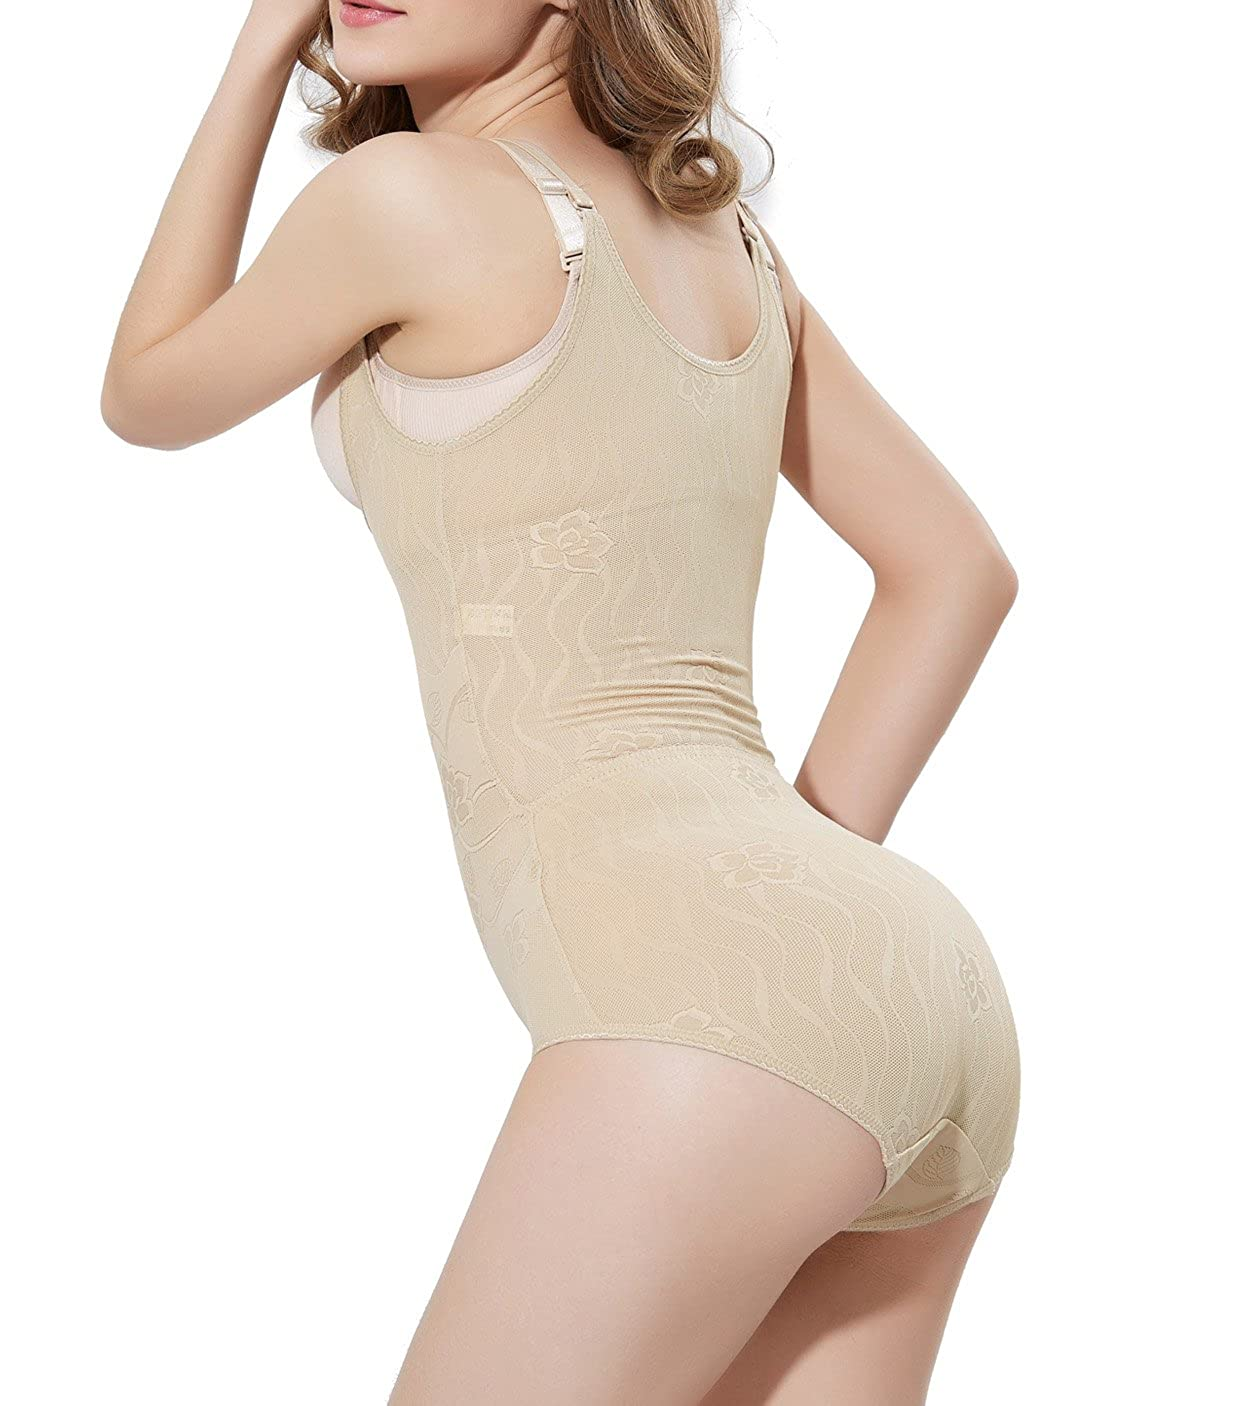 ad2255a55 SLTY Tummy Slimming Body Shapewear Waist Cincher Corset High-Waist Seamless  Firm Control Panty at Amazon Women s Clothing store